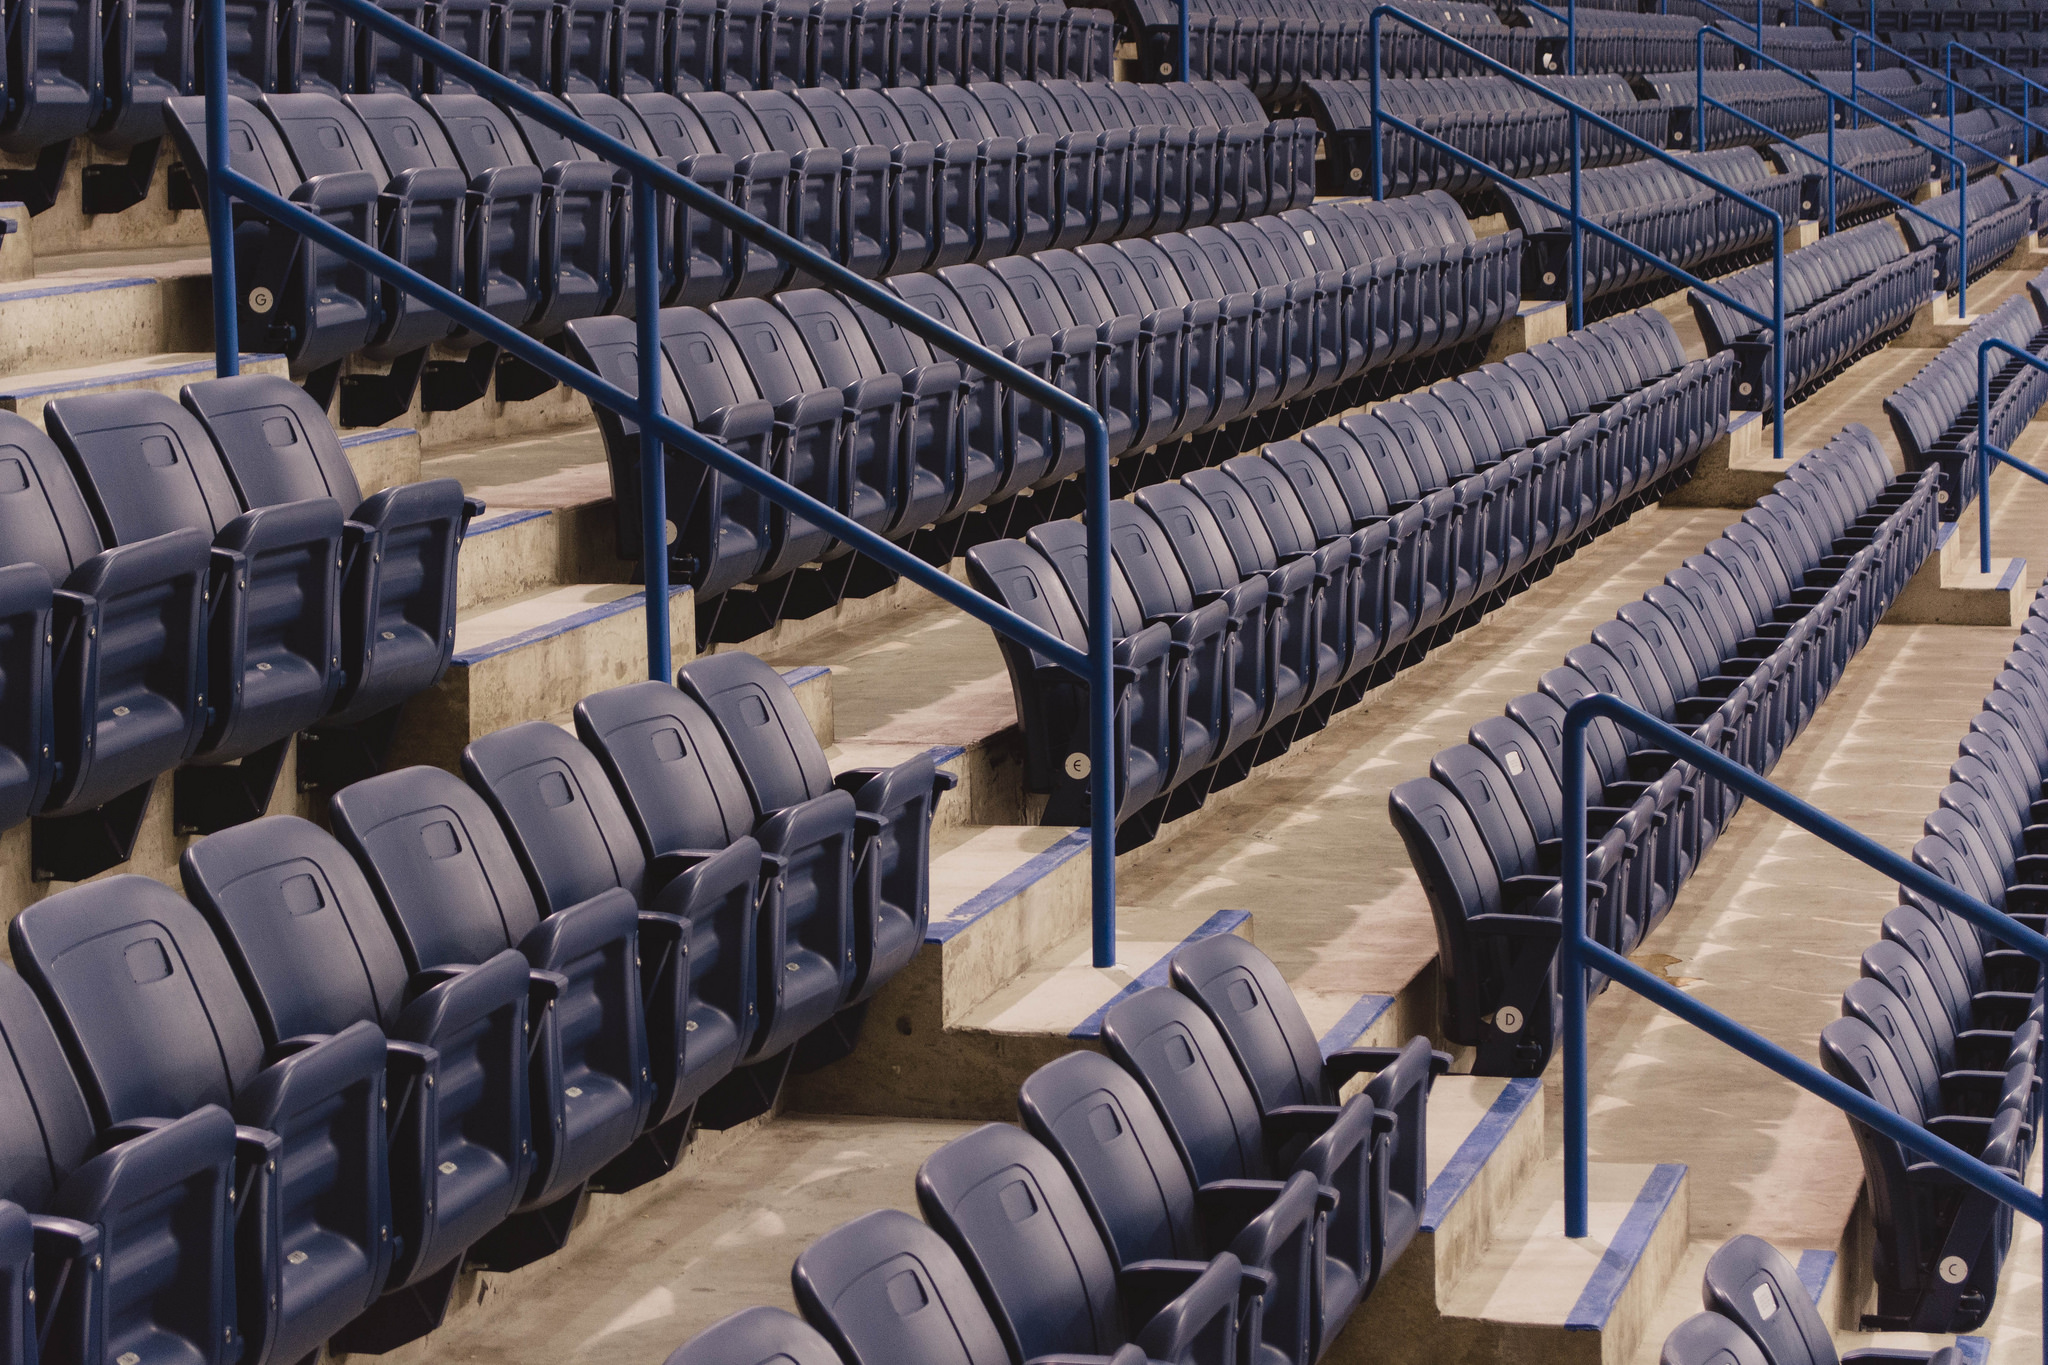 Seats at Maple Leaf Gardens (1/30s, f/5.6, ISO800)